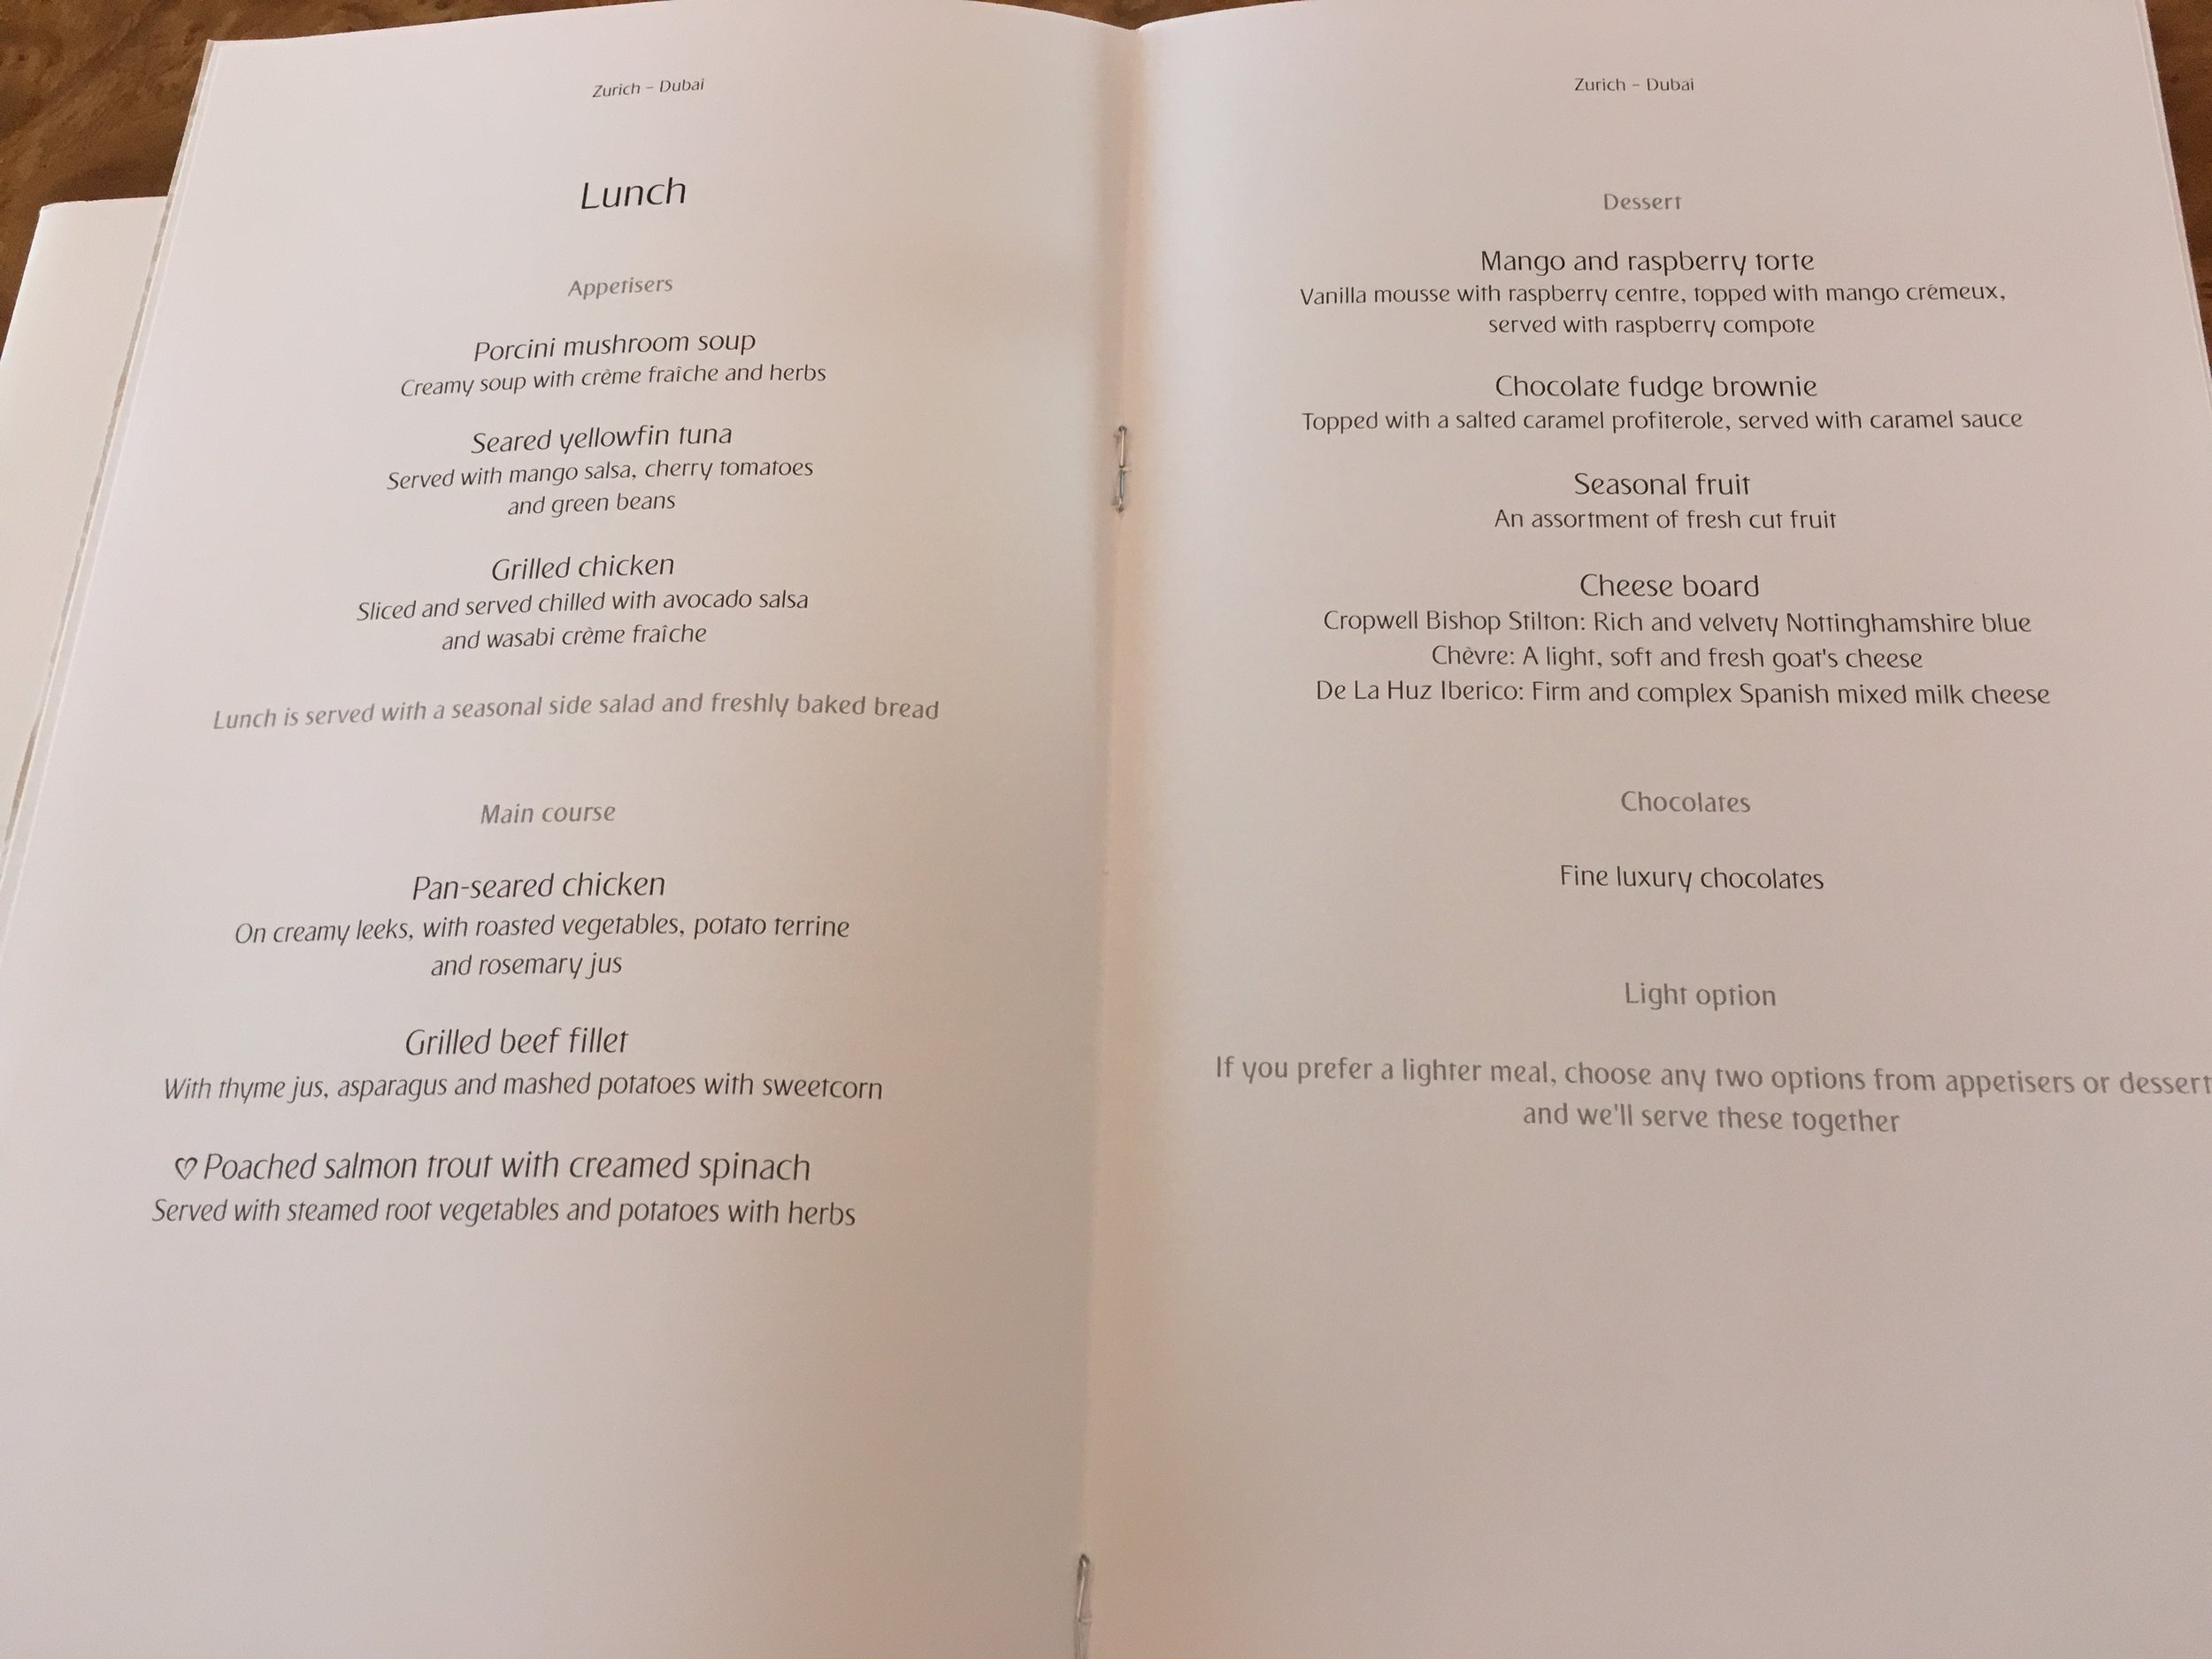 The lunch menu on this trip